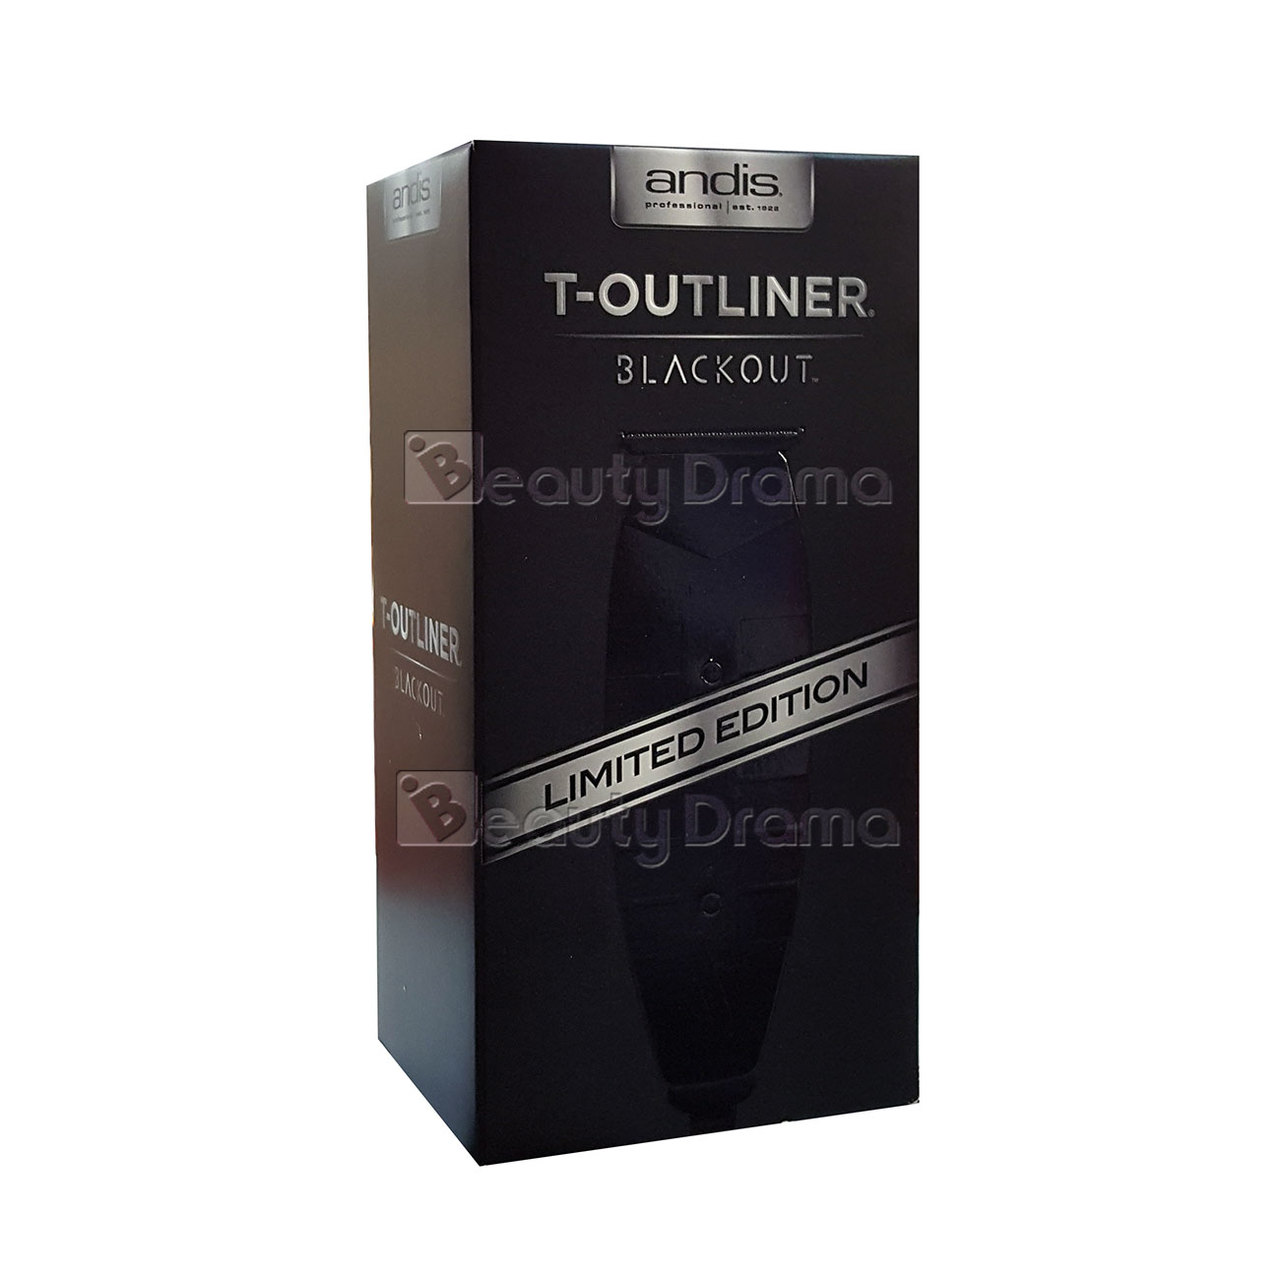 Andis T-Outliner Blackout Limited Edition GTO Trimmer #05110